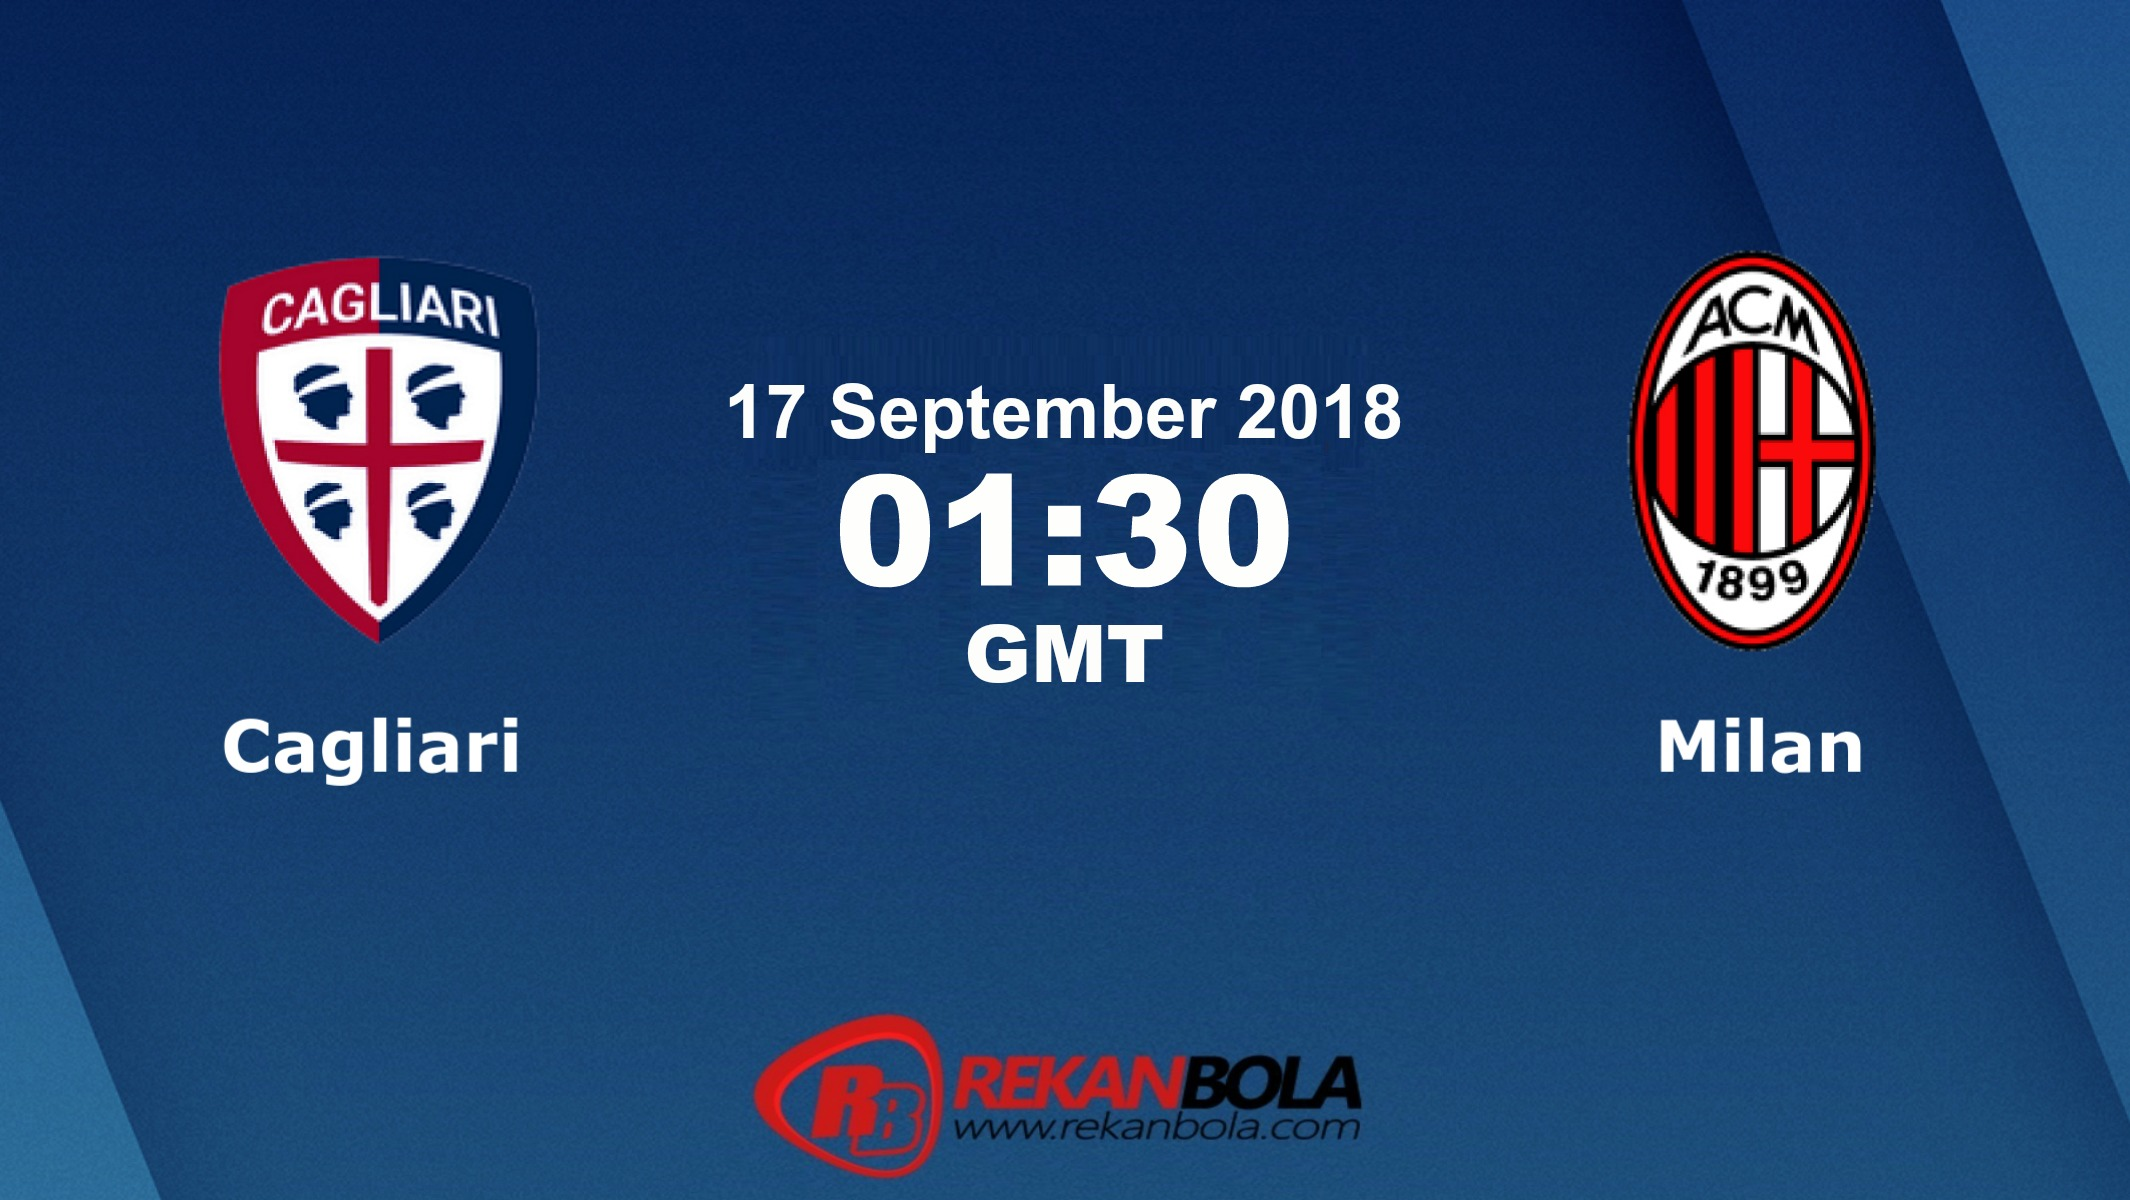 Nonton Siaran Live Streaming Cagliari Vs AC Milan 17 September 2018